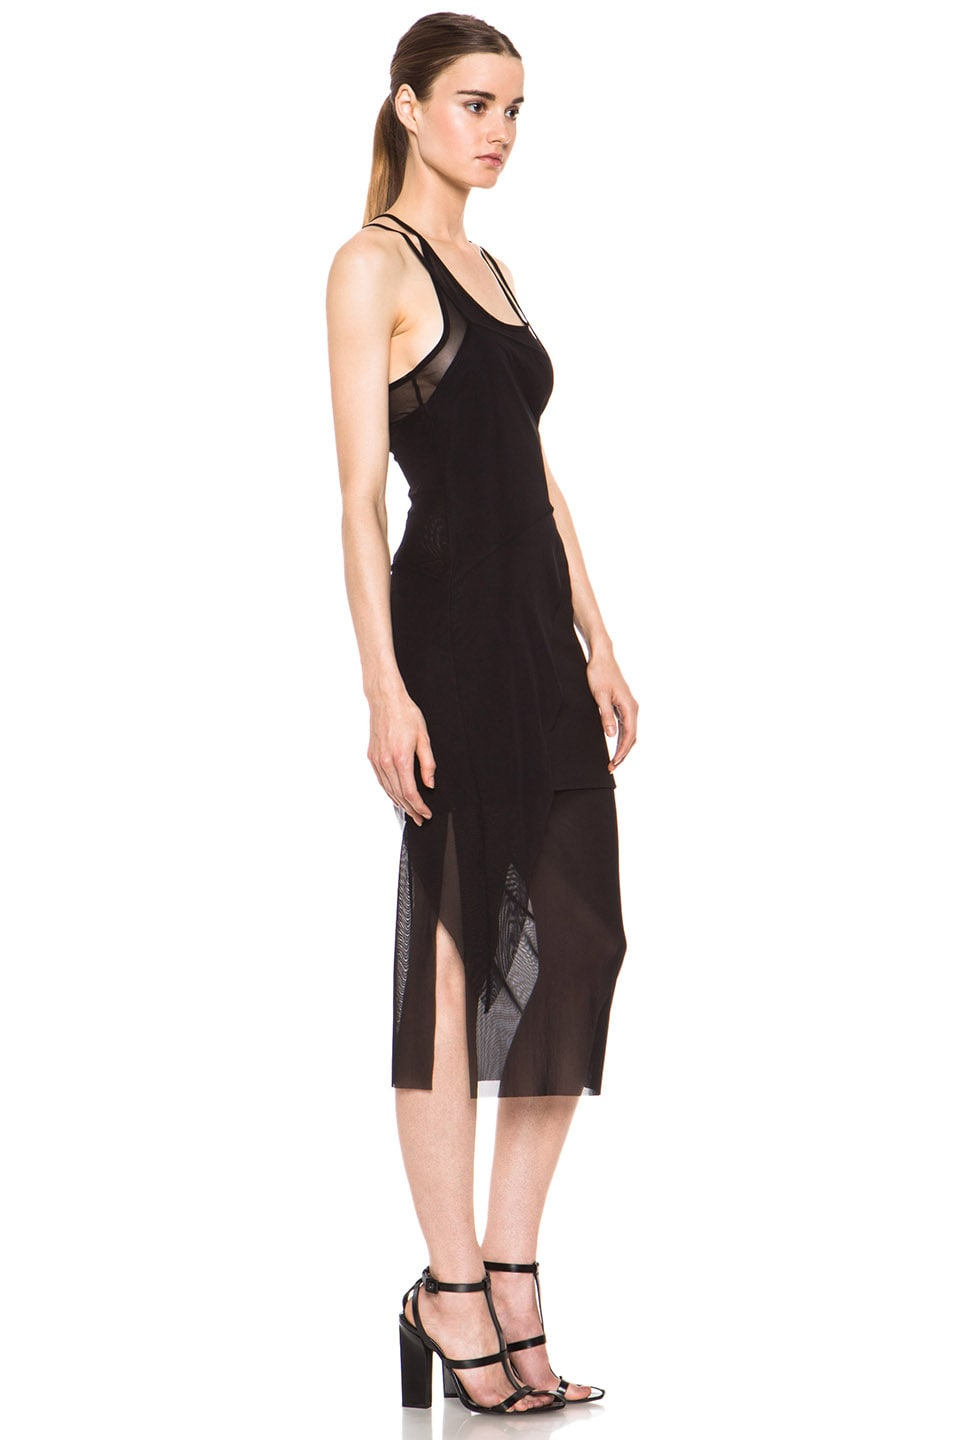 Image 3 of Kimberly Ovitz Kimek Polyamide-Blend Dress in Black